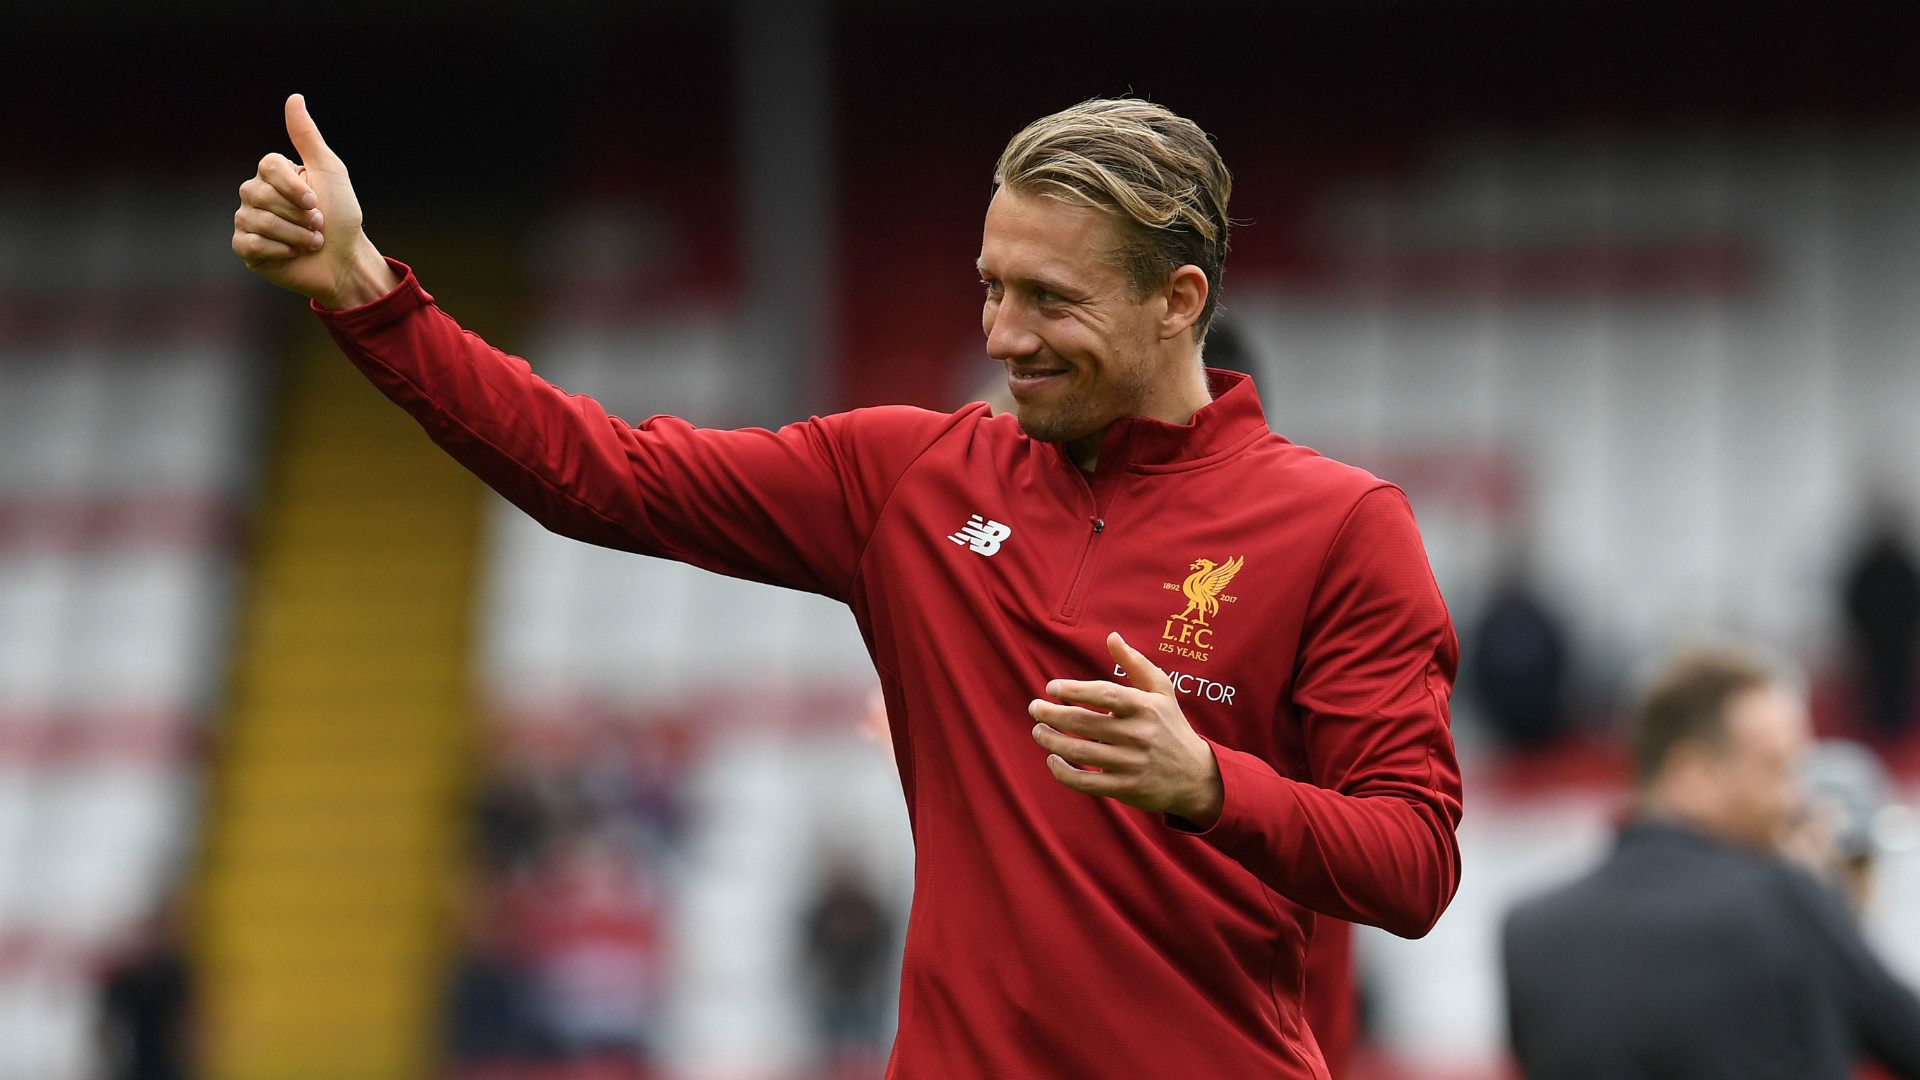 Lucas Leiva leaves Liverpool to join Lazio